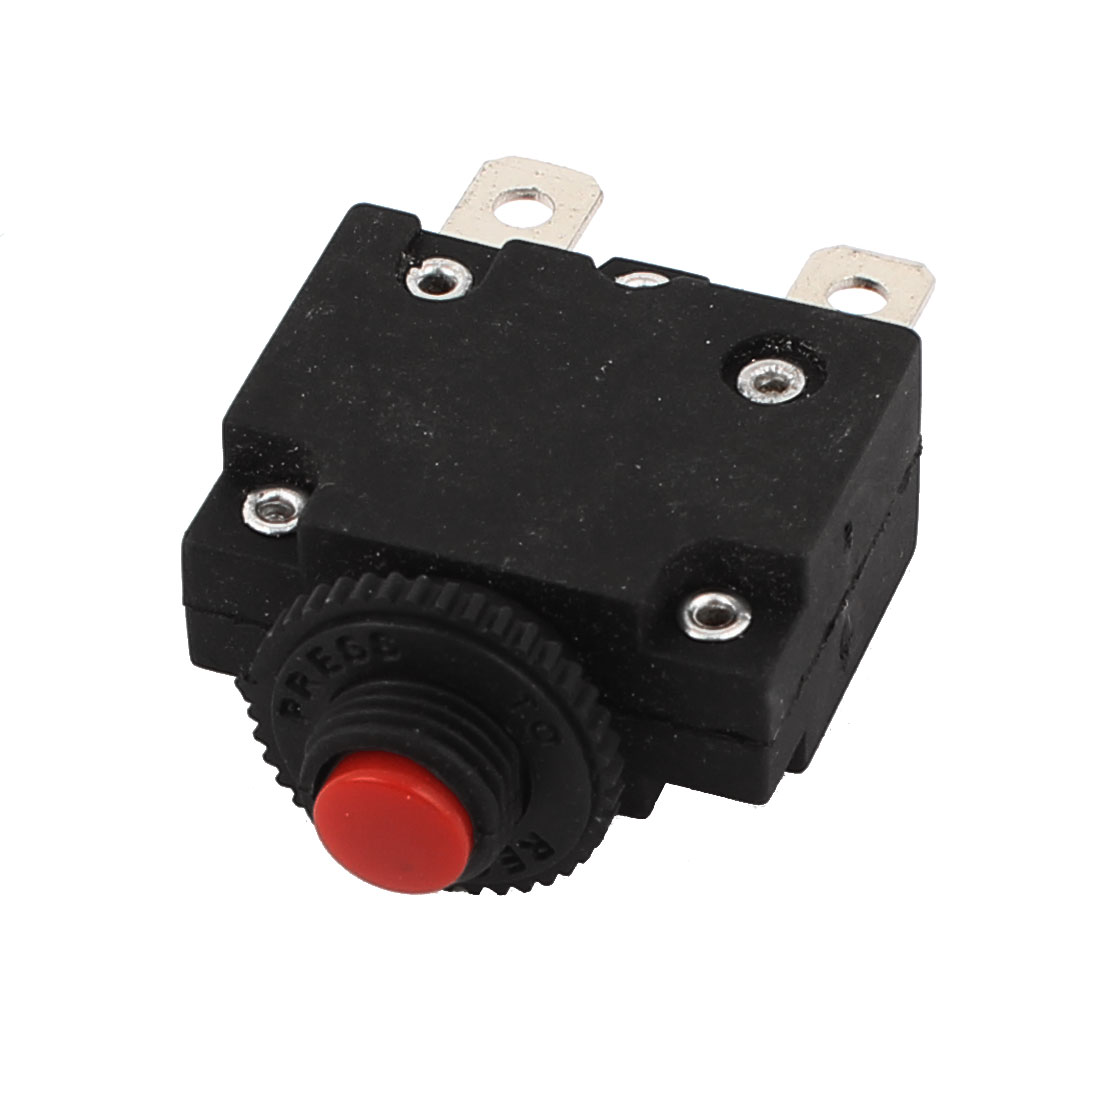 125/250V 10A Circuit Breaker Overload Protector Switch Red Button